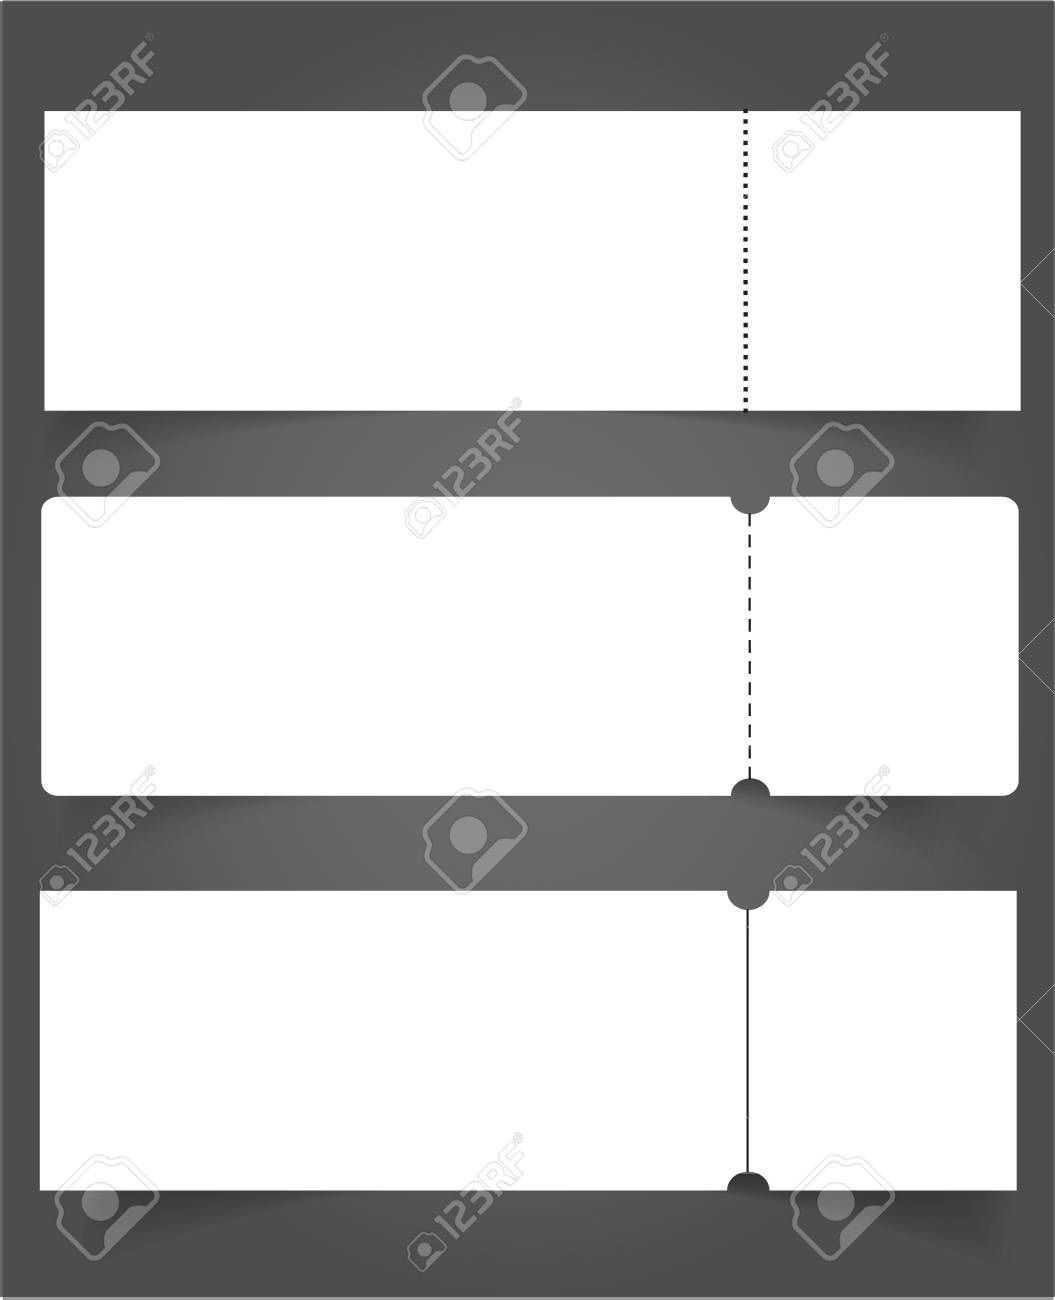 001 Outstanding Free Event Ticket Template Printable Photo Full